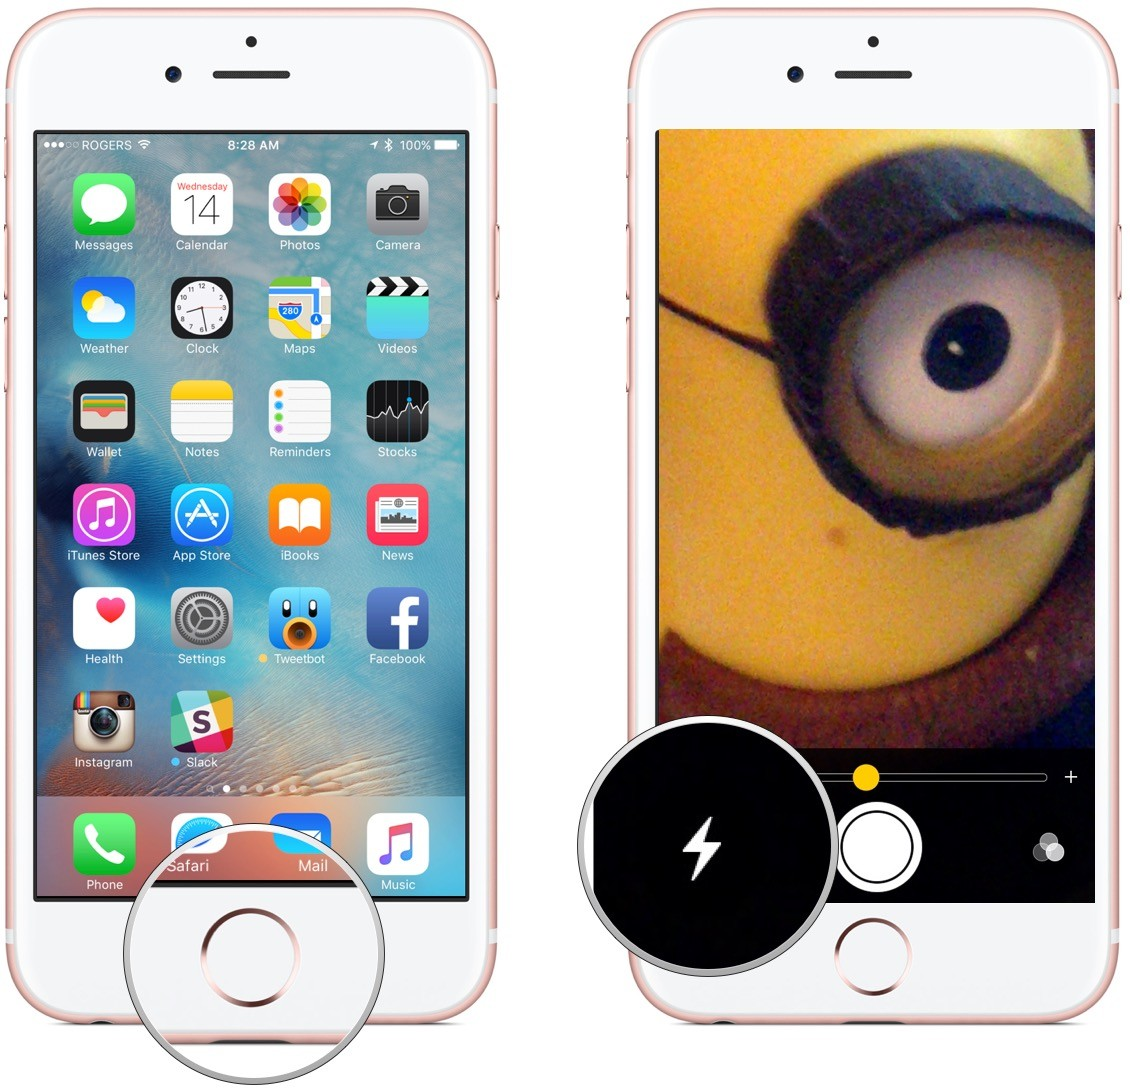 accessibility-ios10-magnifier-flashlight-screens-06